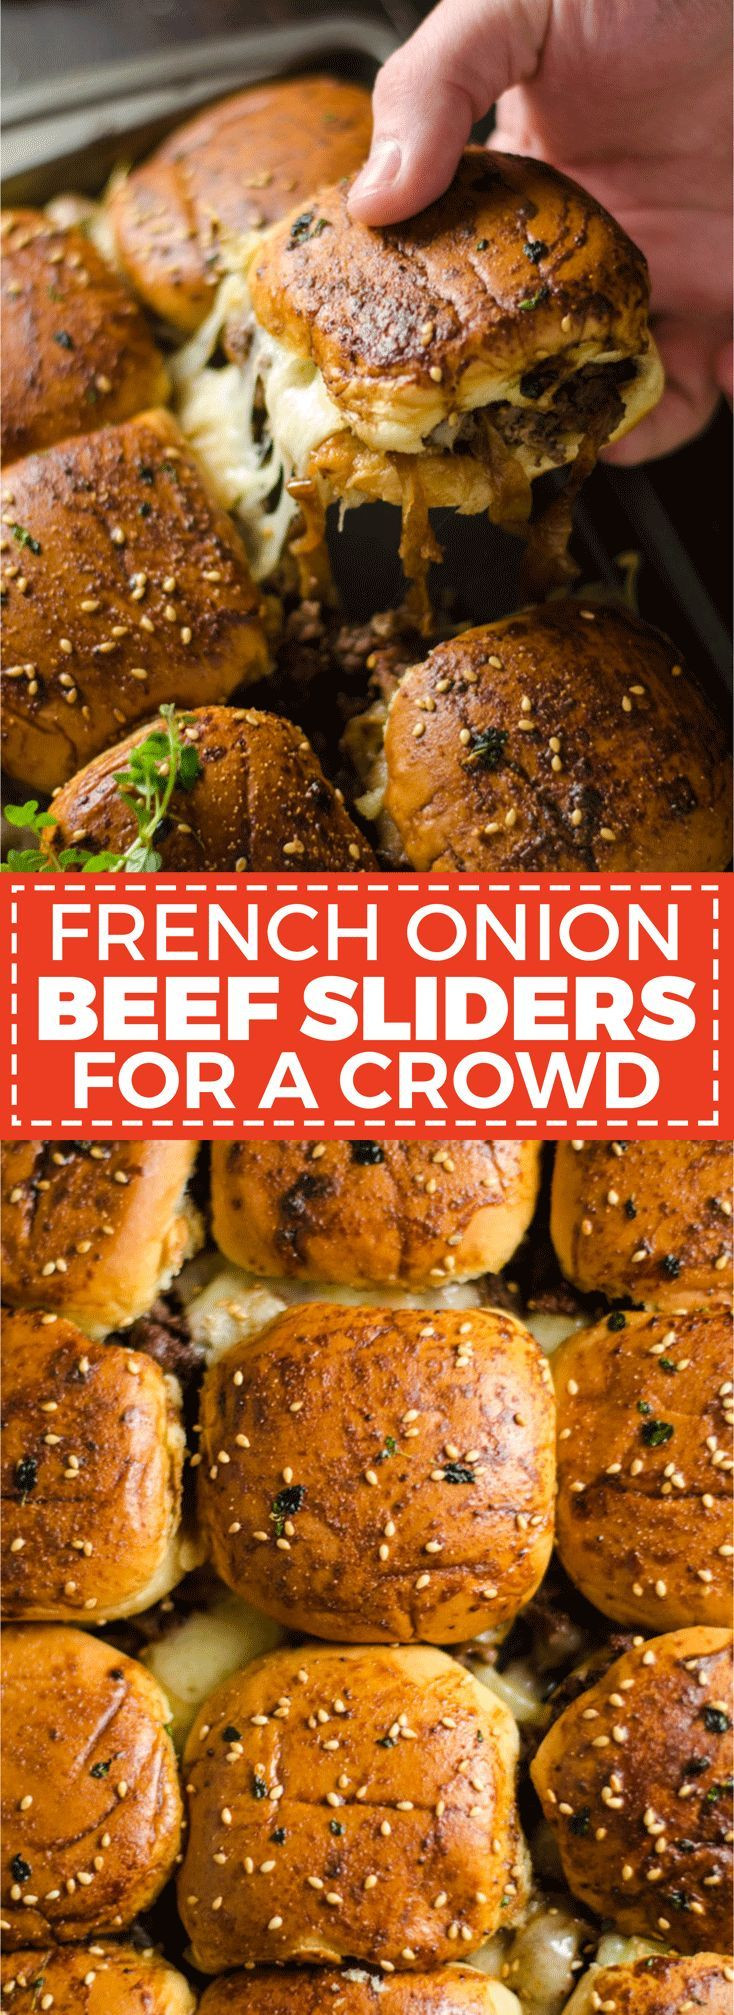 Christmas Side Dishes For A Crowd  Best 25 Mini sandwich appetizers ideas on Pinterest